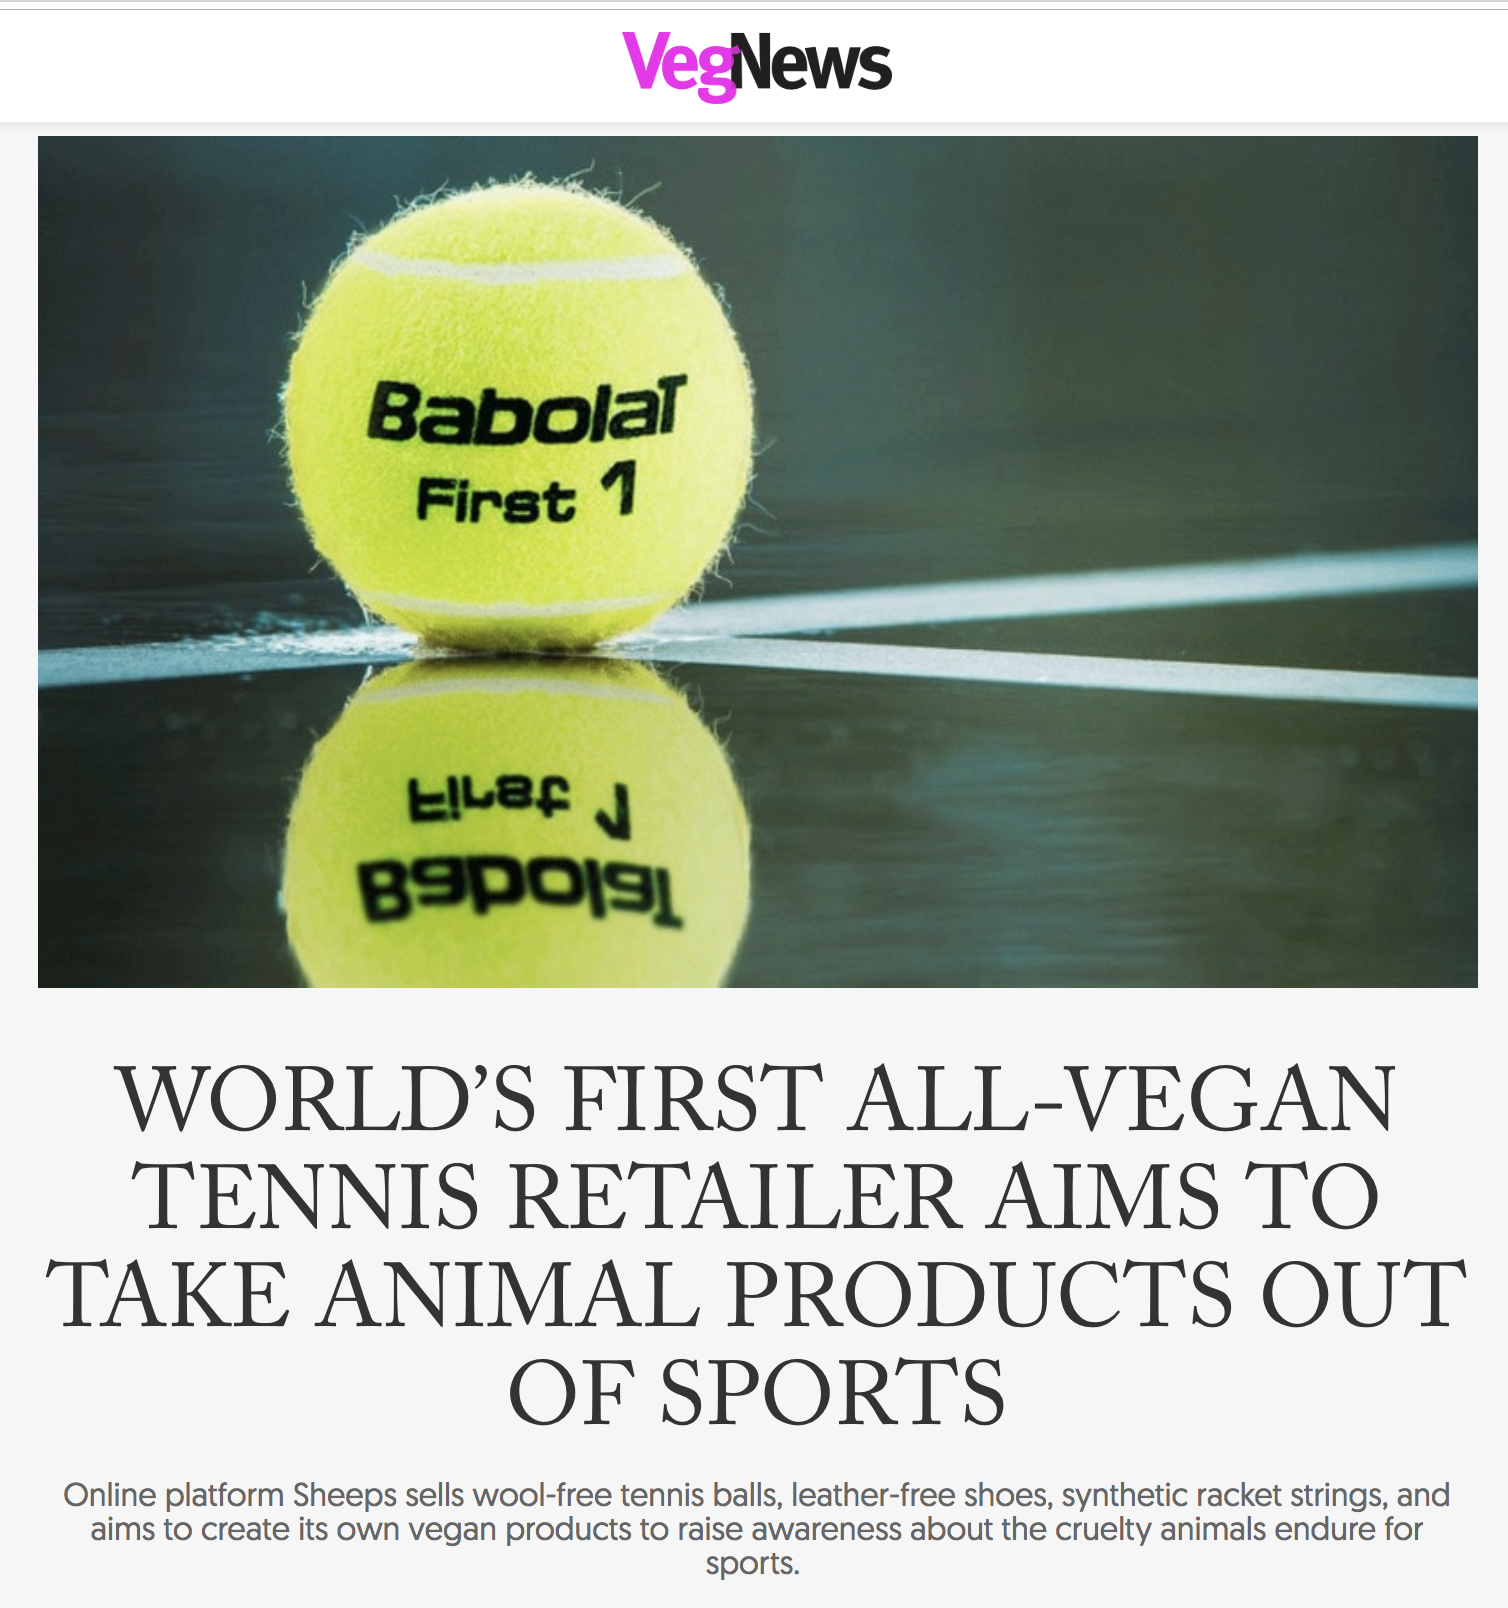 VegNews: World's First All-Vegan Tennis Retailer Aims to Take Animal Products Out of Sports  by  ANNA STAROSTINETSKAYA, July 11, 2019